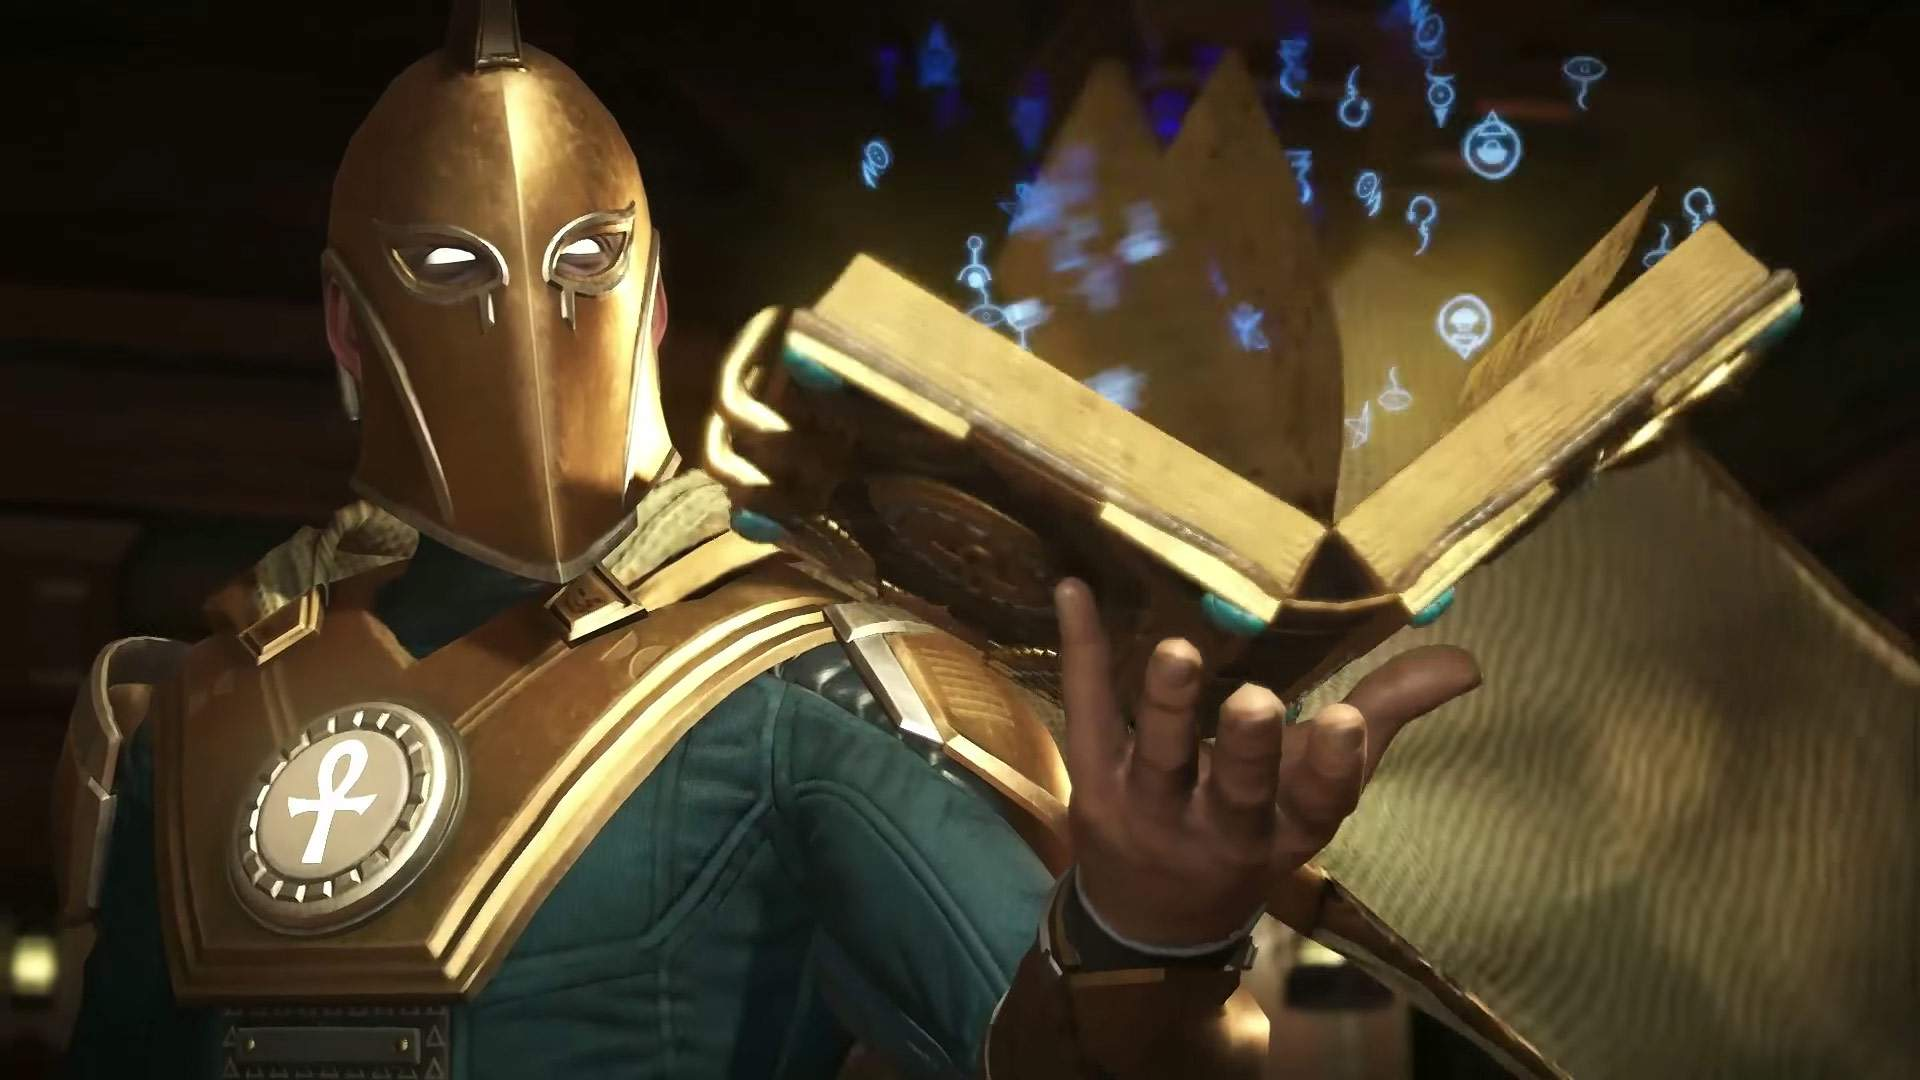 WATCH Doctor Fate Reveal Trailer for Injustice 2 1920x1080